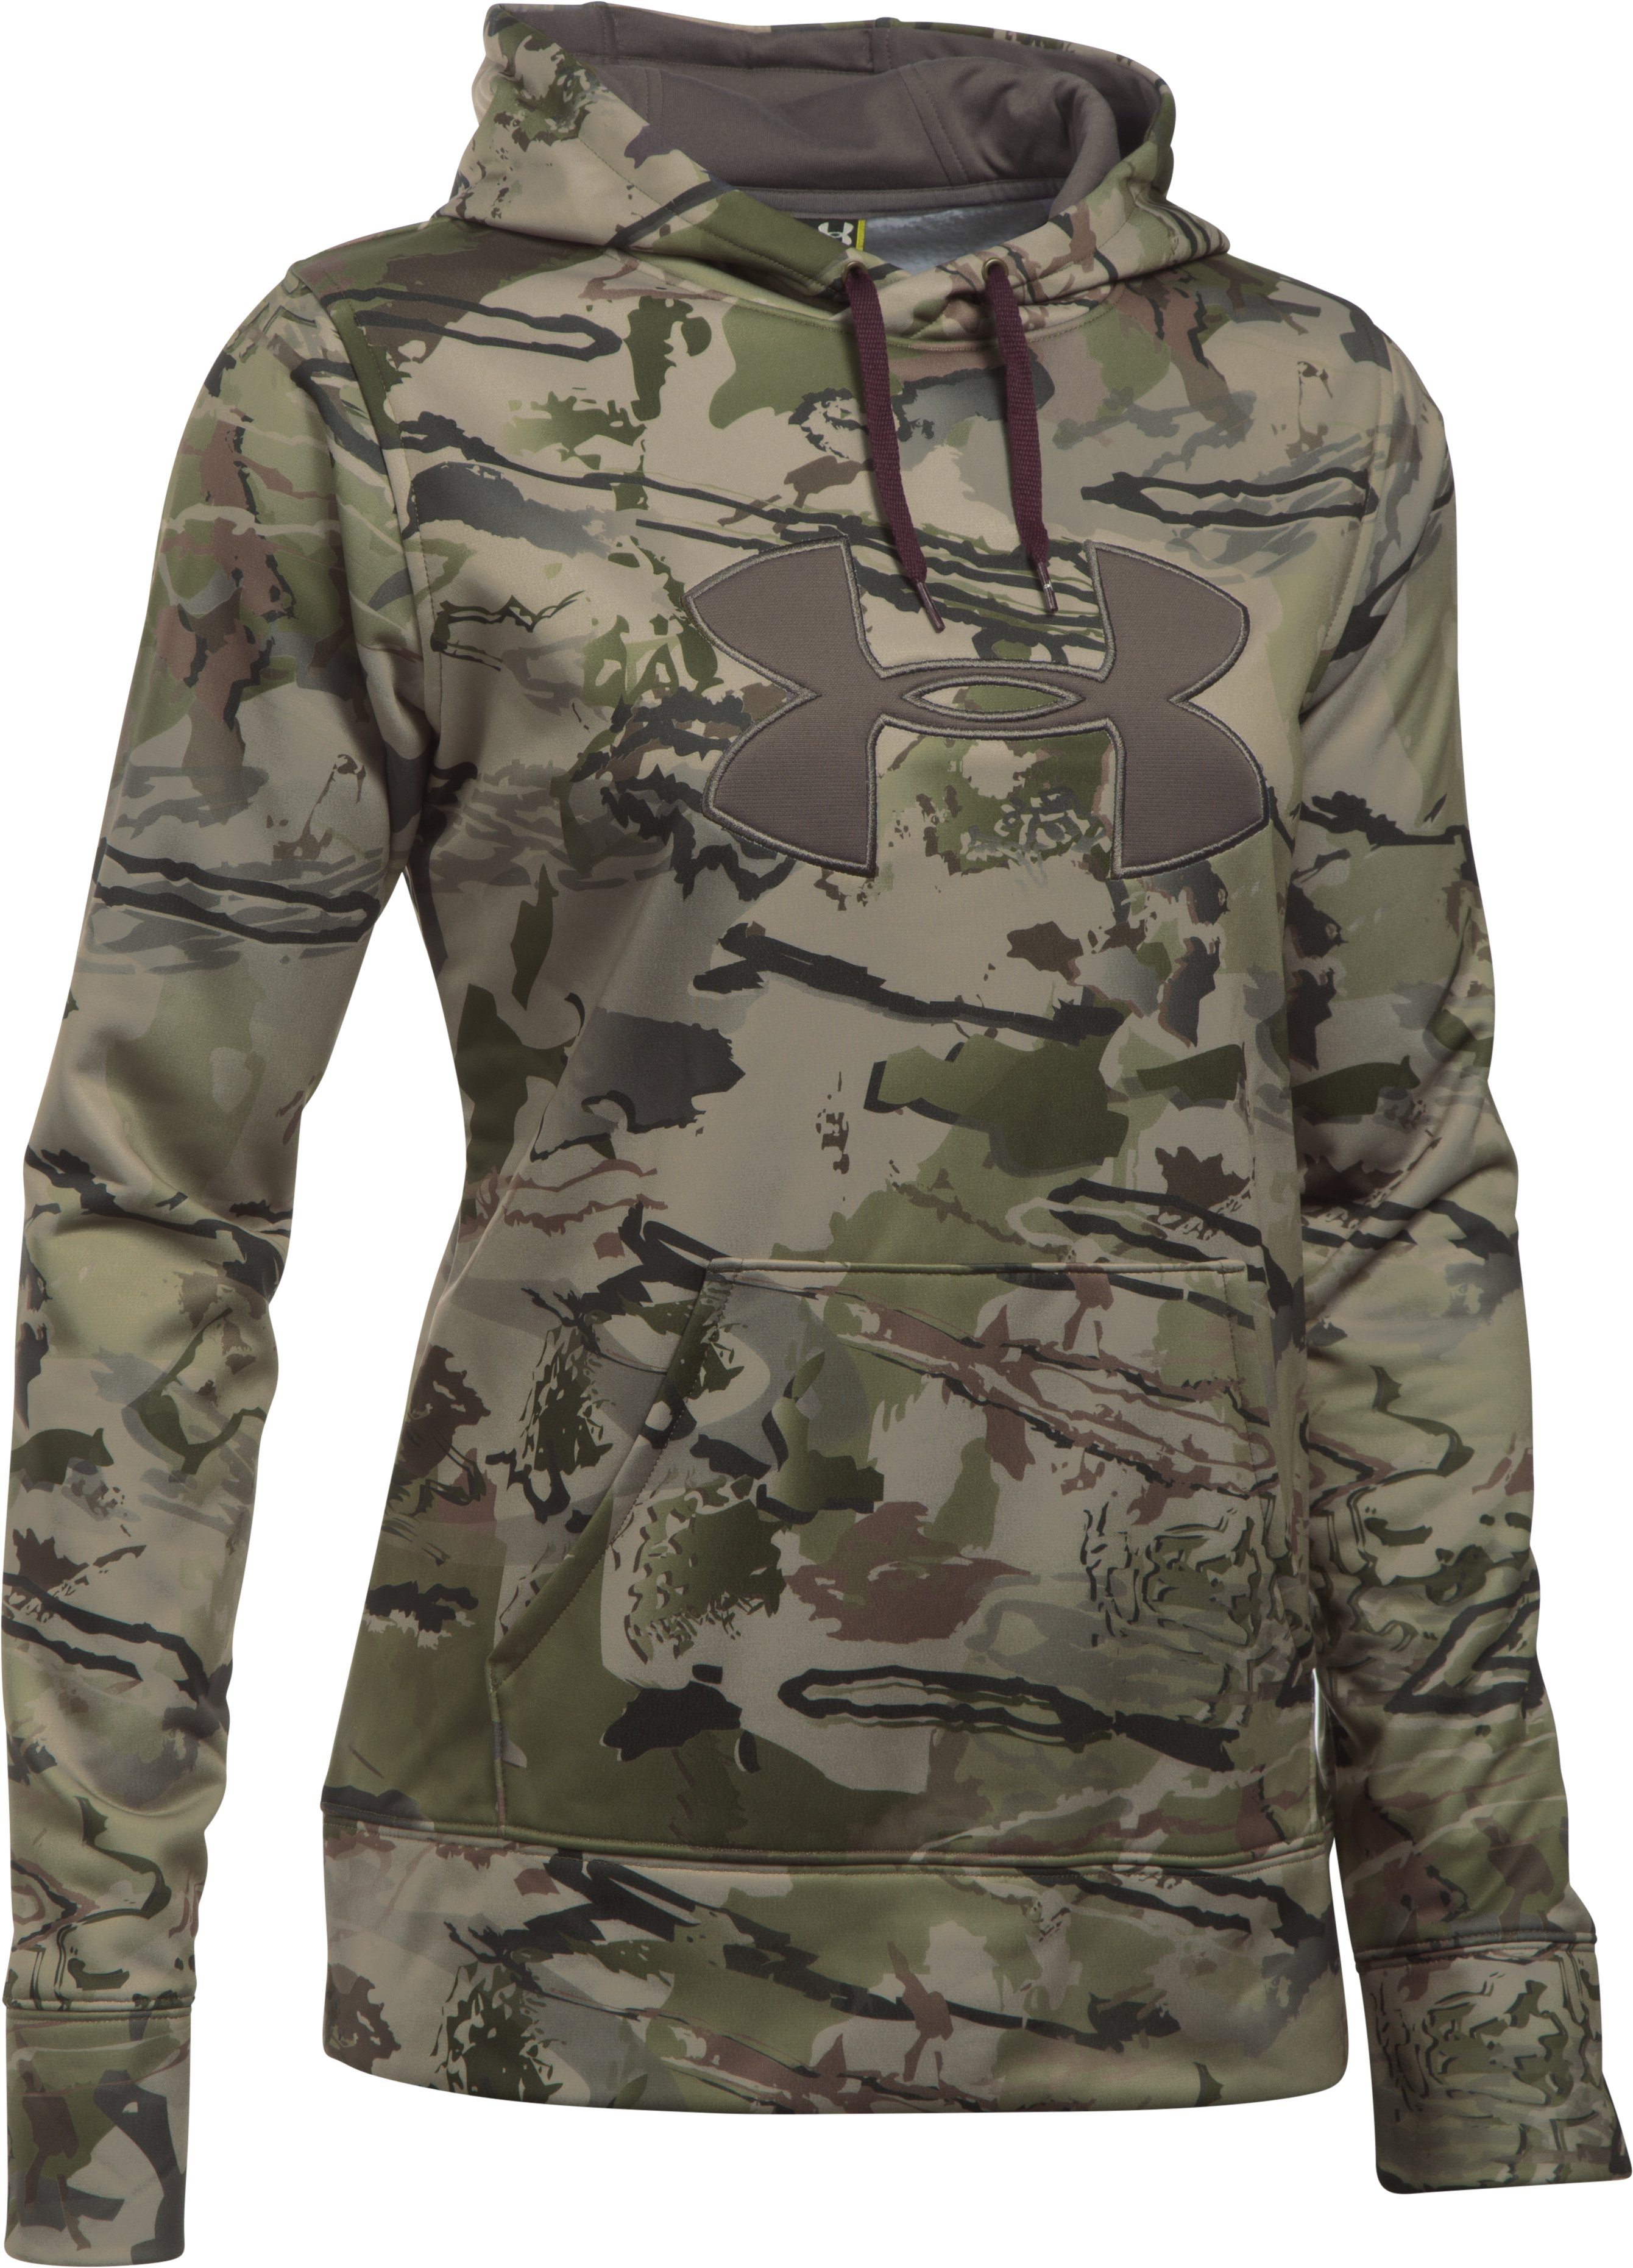 Women's UA Camo Big Logo Hoodie, RIDGE REAPER® BARREN, undefined